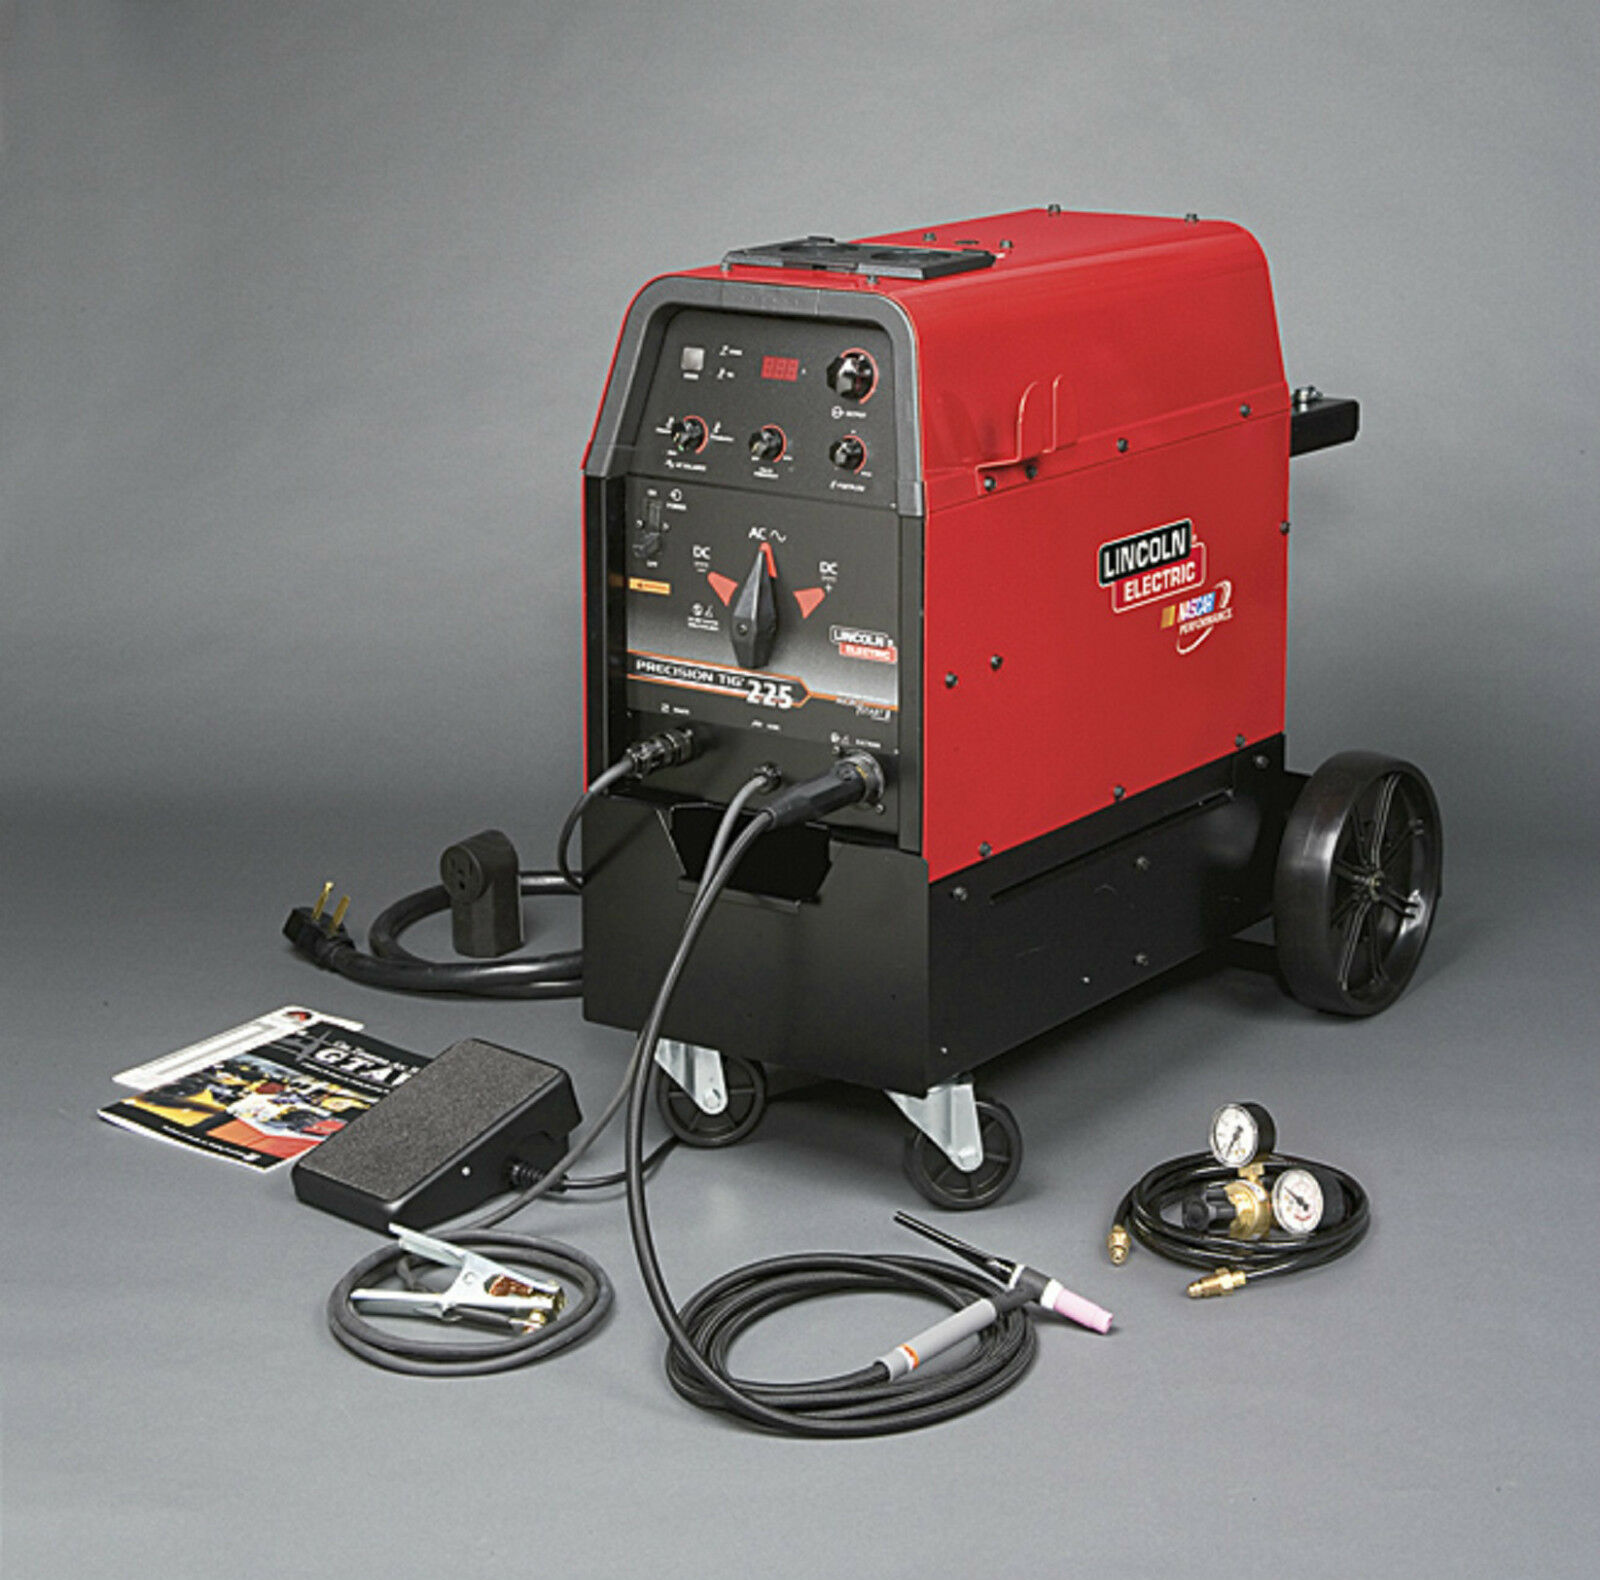 Lincoln Precision Tig 225 Ready Pak With Cart K2535-2 on sale